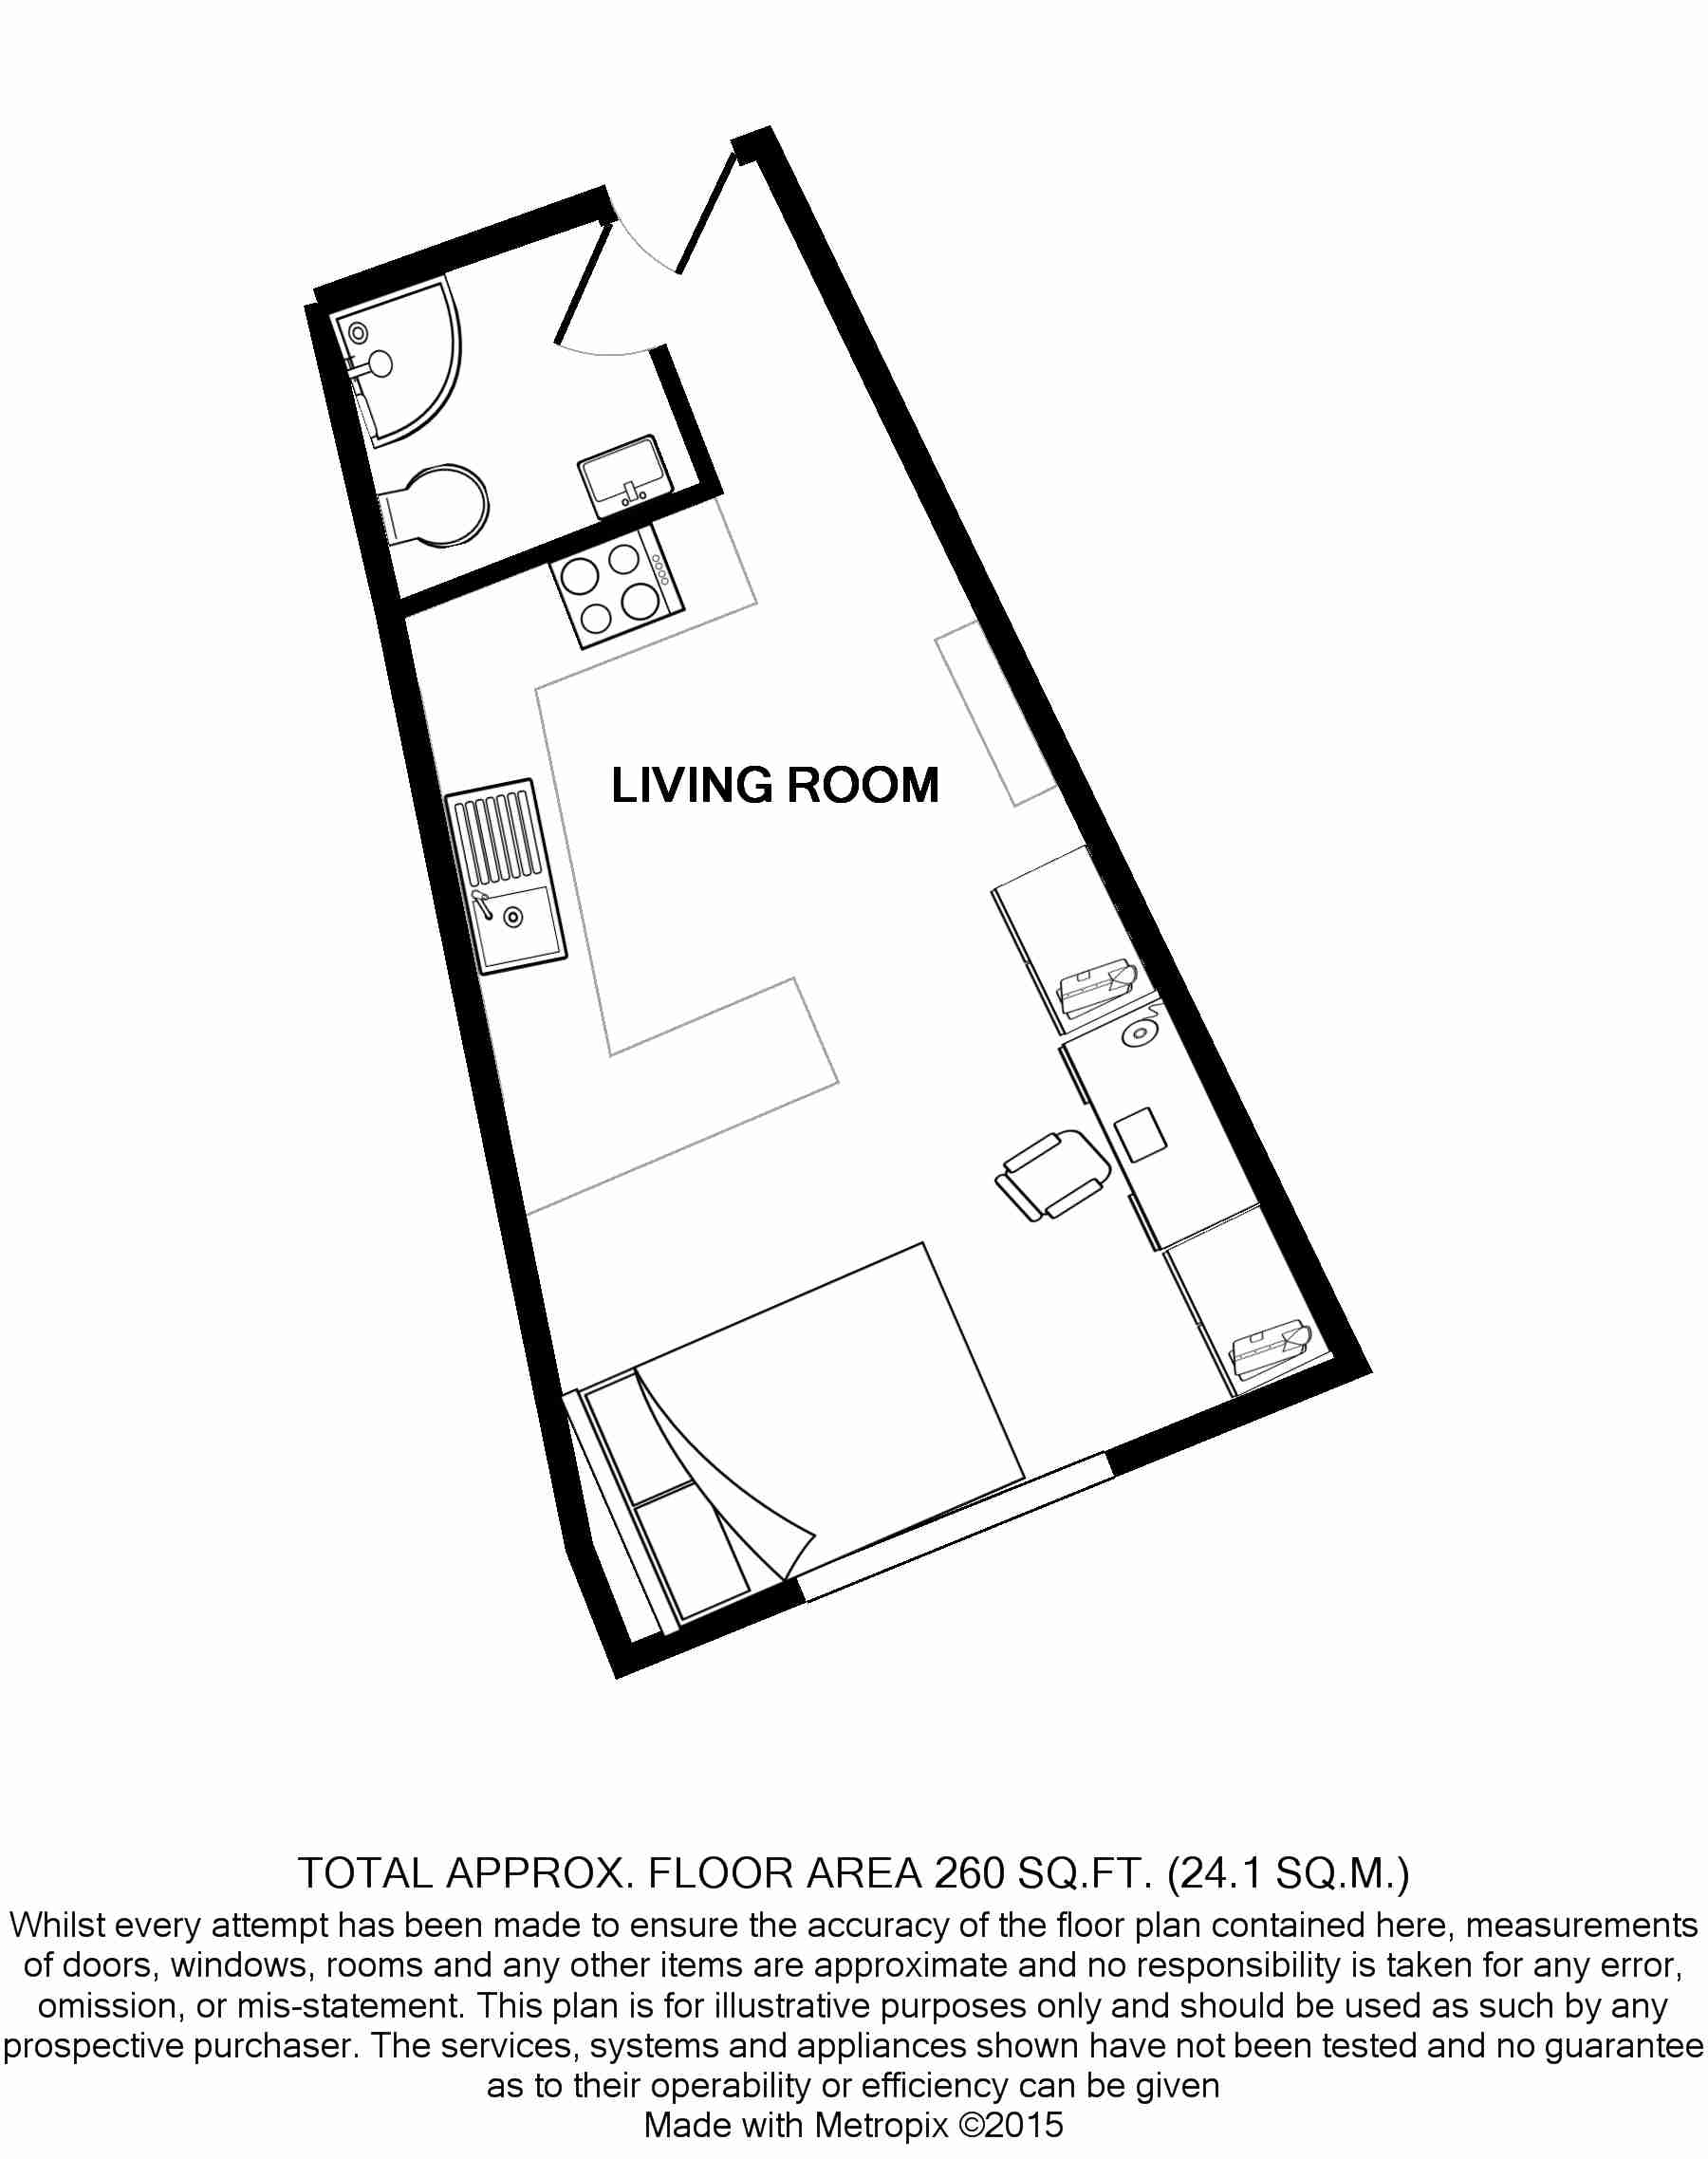 Flat L, Park View, Nottingham Student House, Floorplans